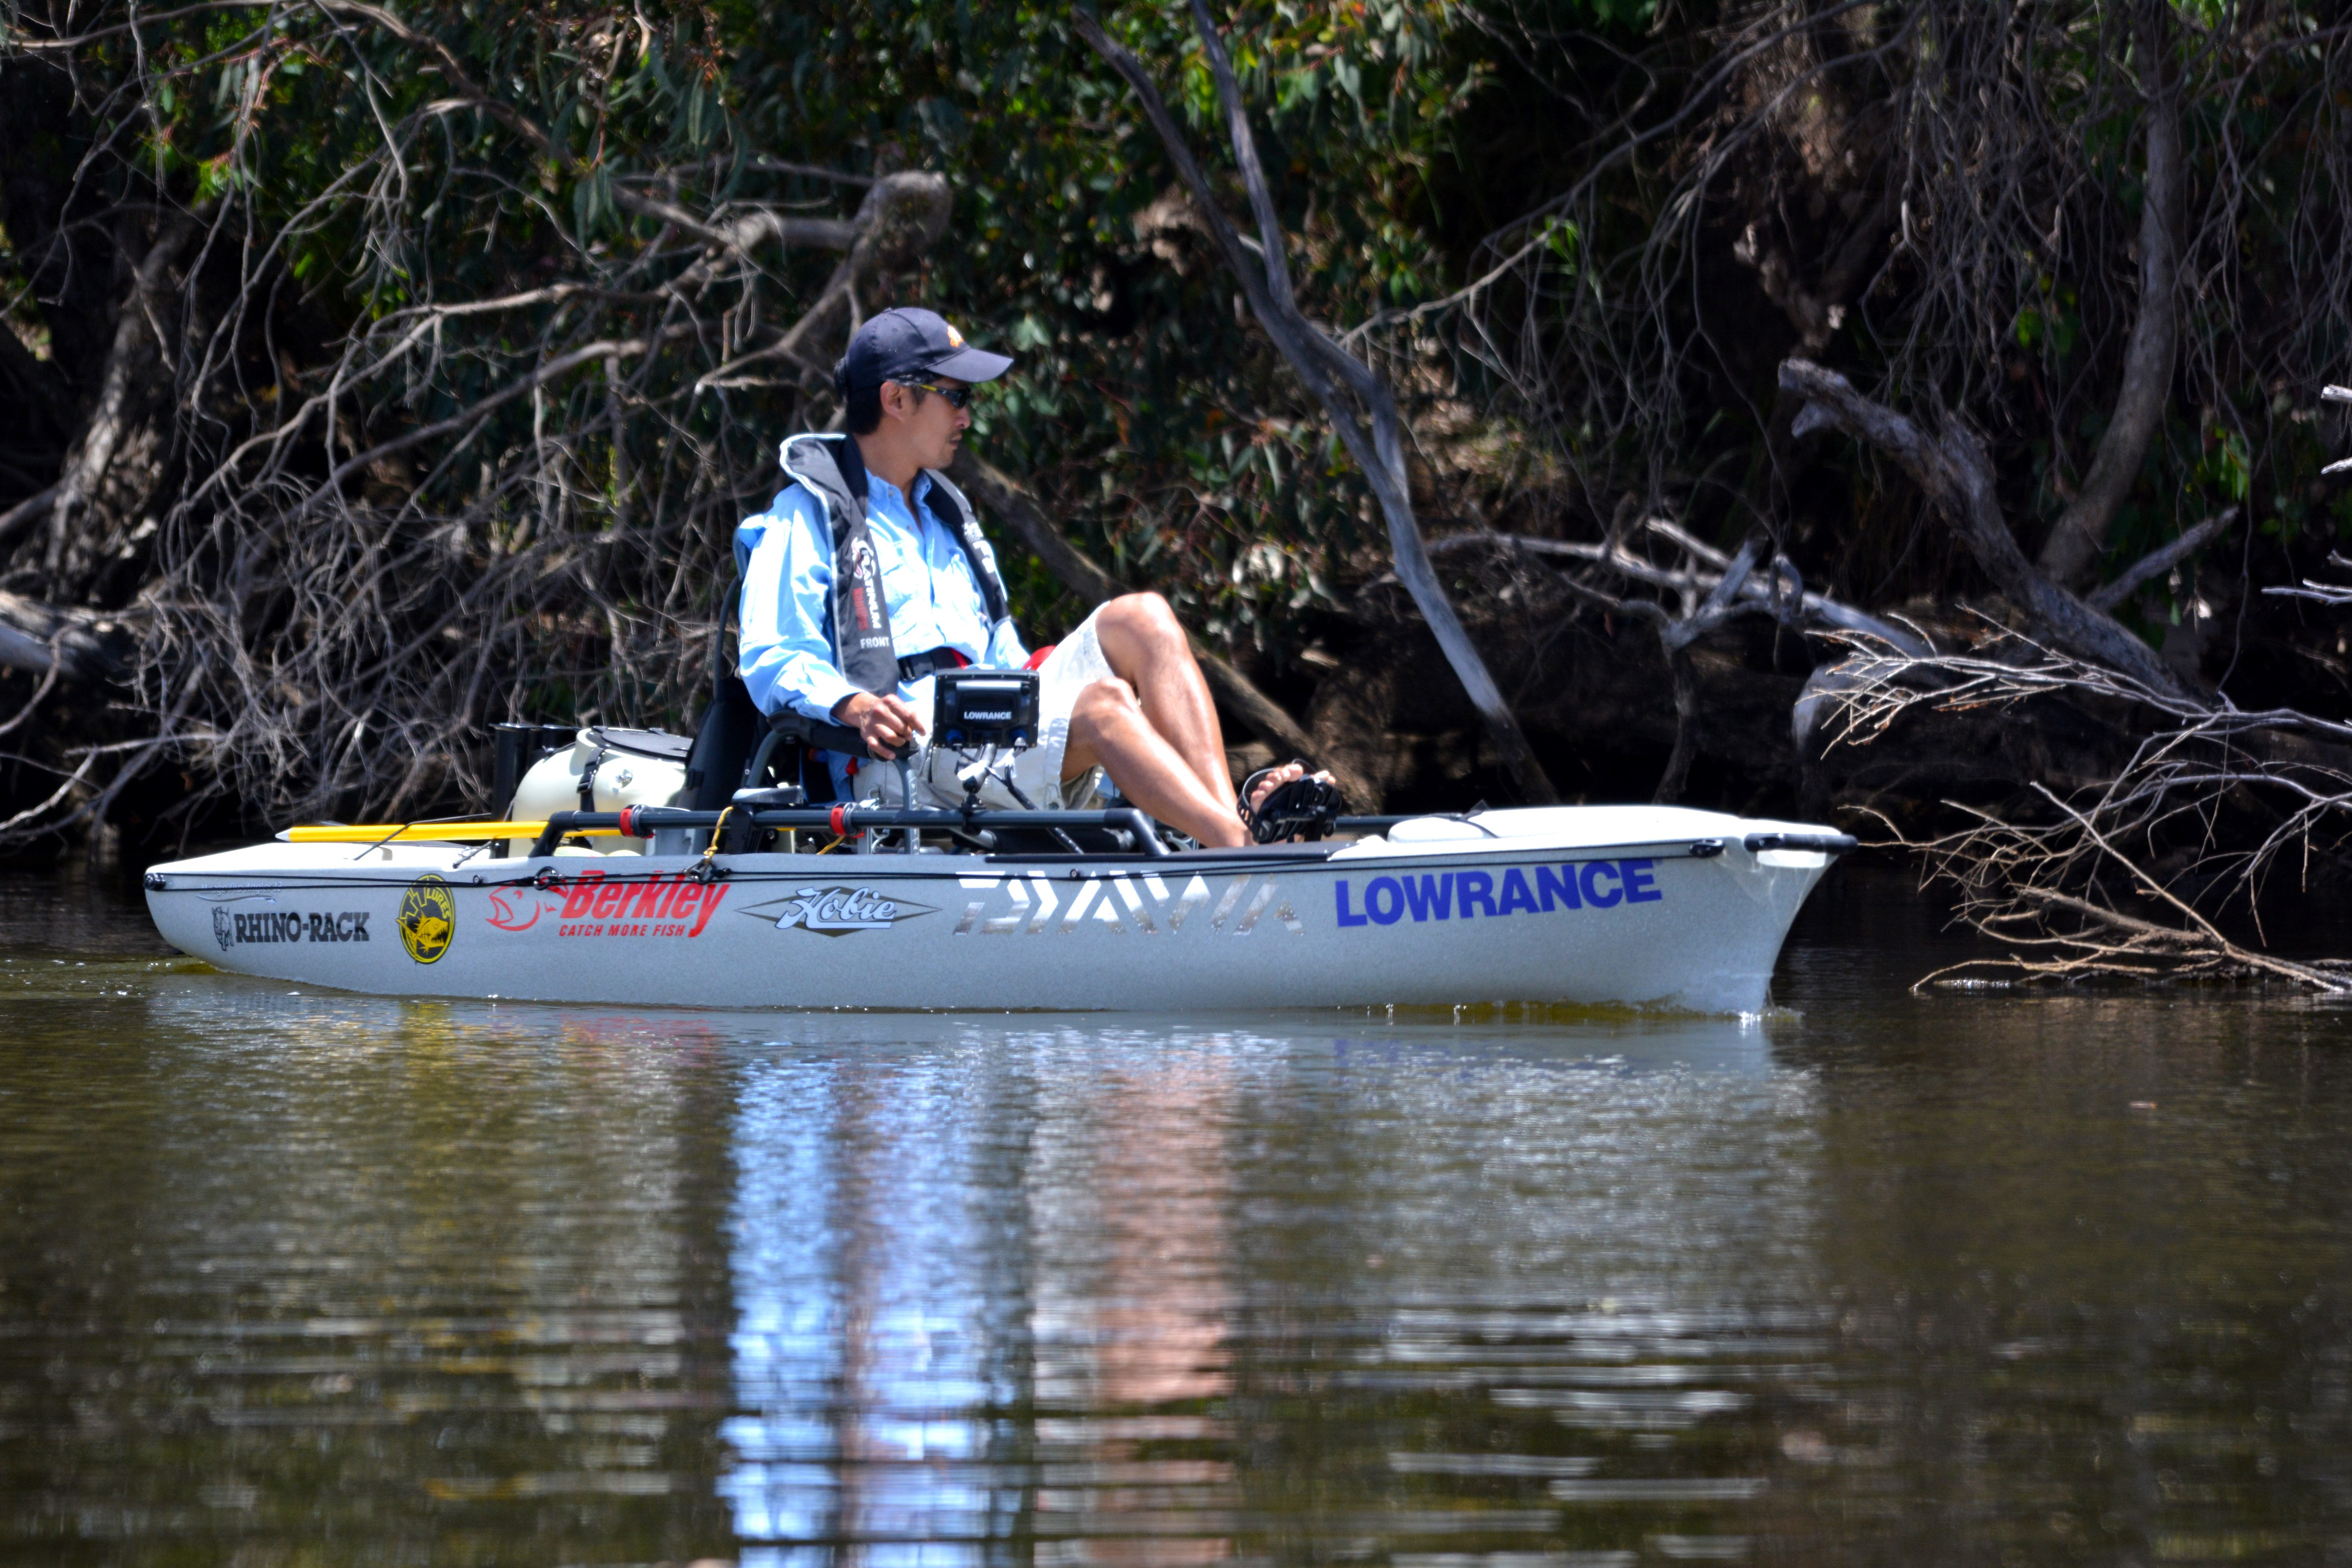 Gallery: 2014 Lowrance Navigation Day